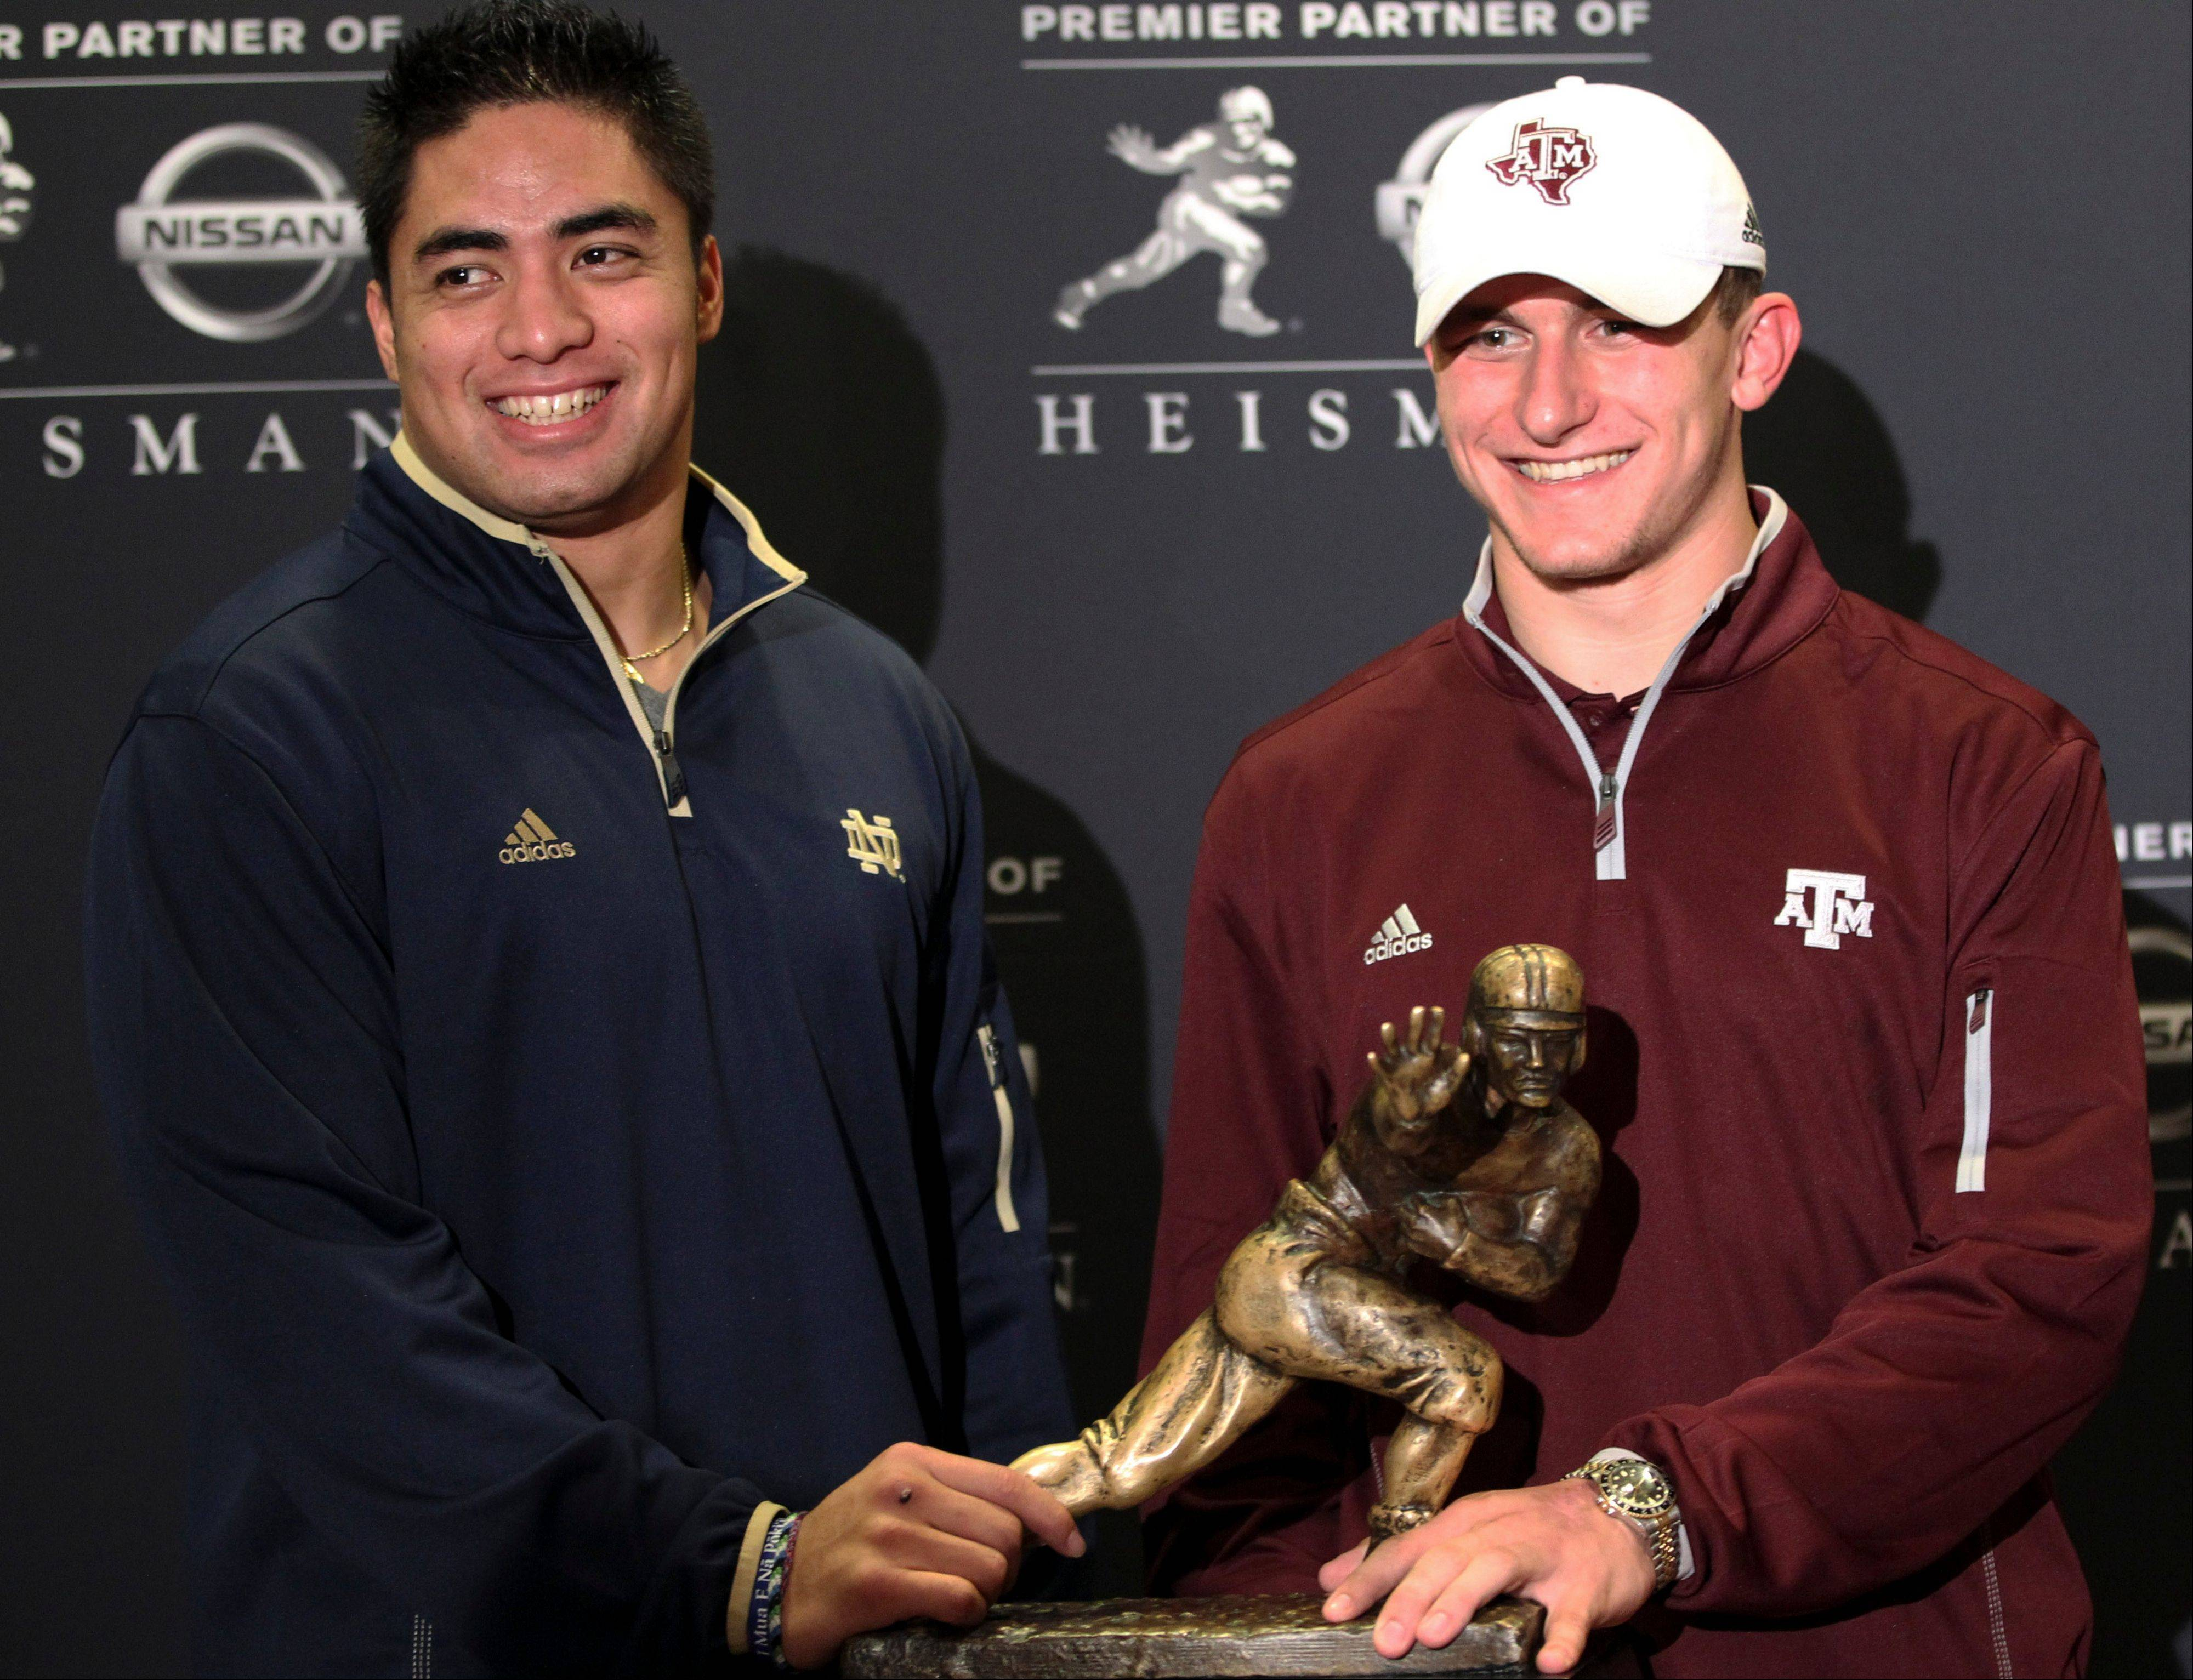 Notre Dame linebacker Manti Te'o and Texas A&M quarterback Johnny Manziel, two of the three Heisman Trophy finalists, pose with the Heisman Trophy Friday during a media availability in New York City.